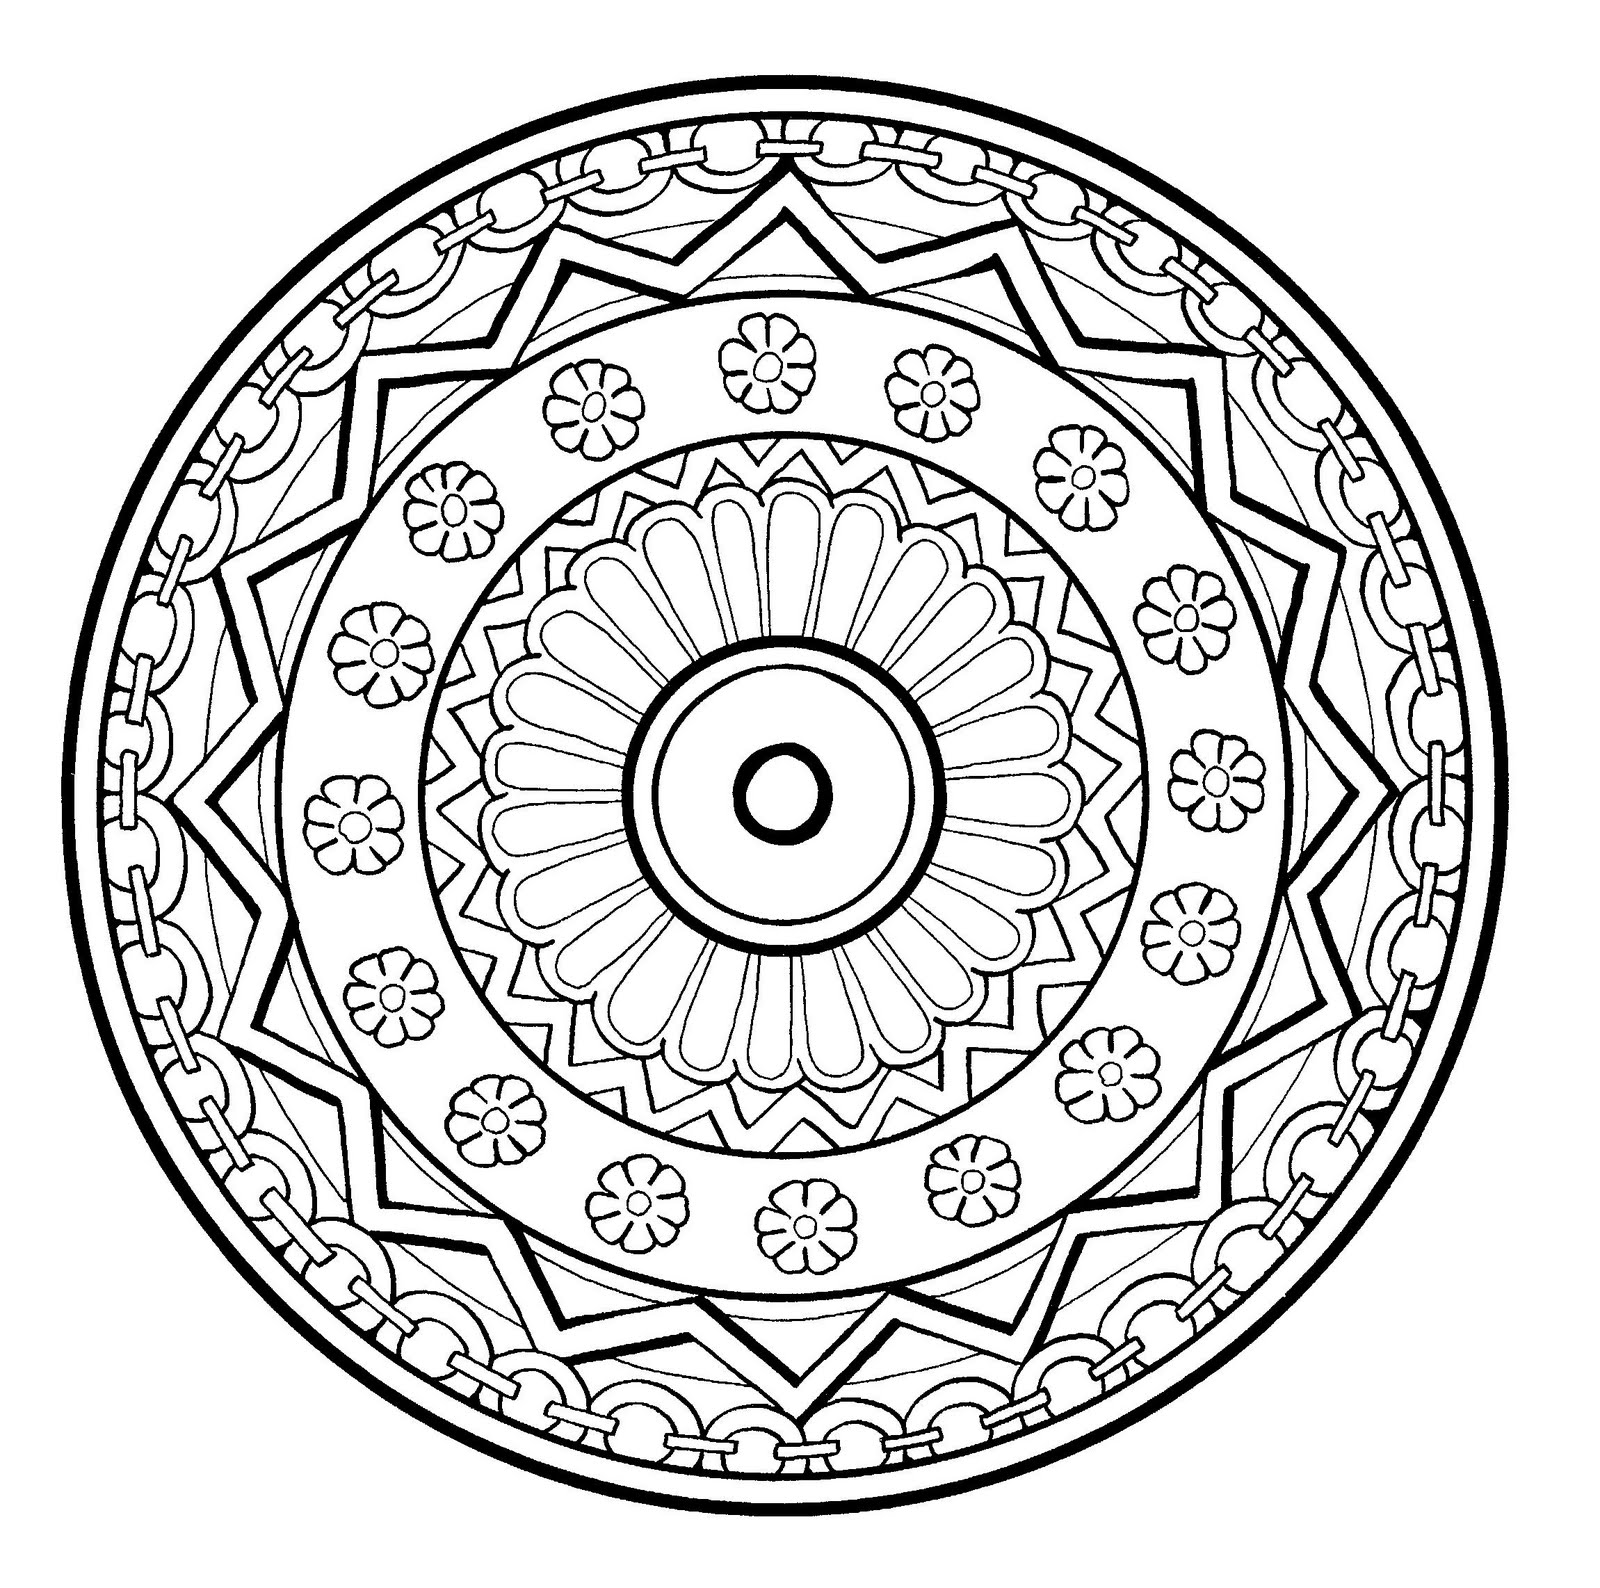 coloring mandala with color simple floral mandala  mandalas adult coloring pages with coloring mandala color